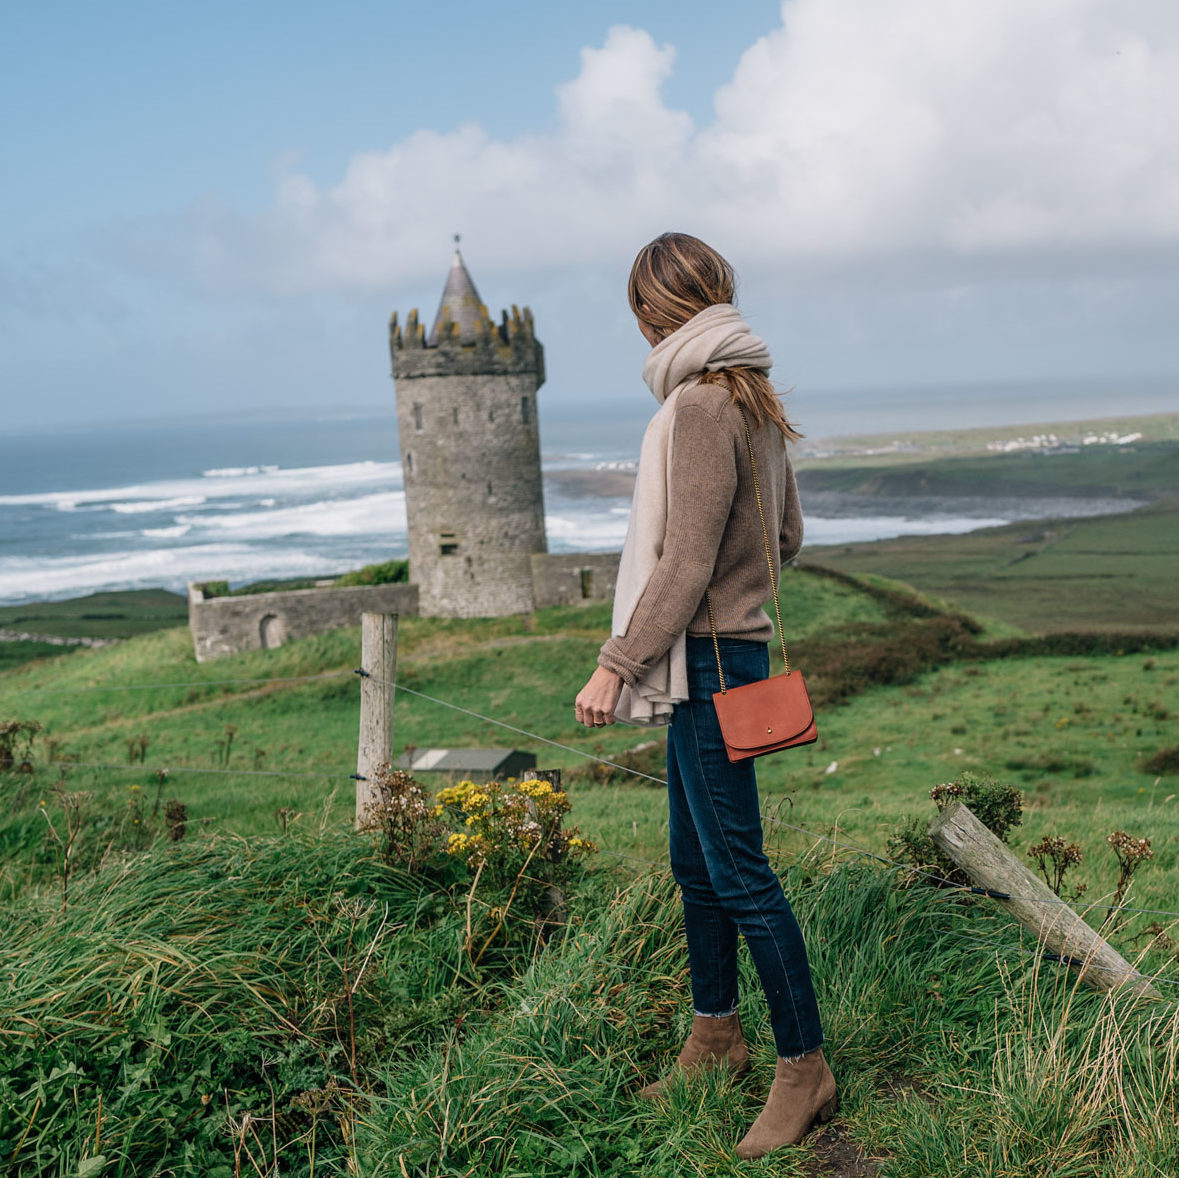 Jess Ann Kirby plans to re-visit Ireland in 2018